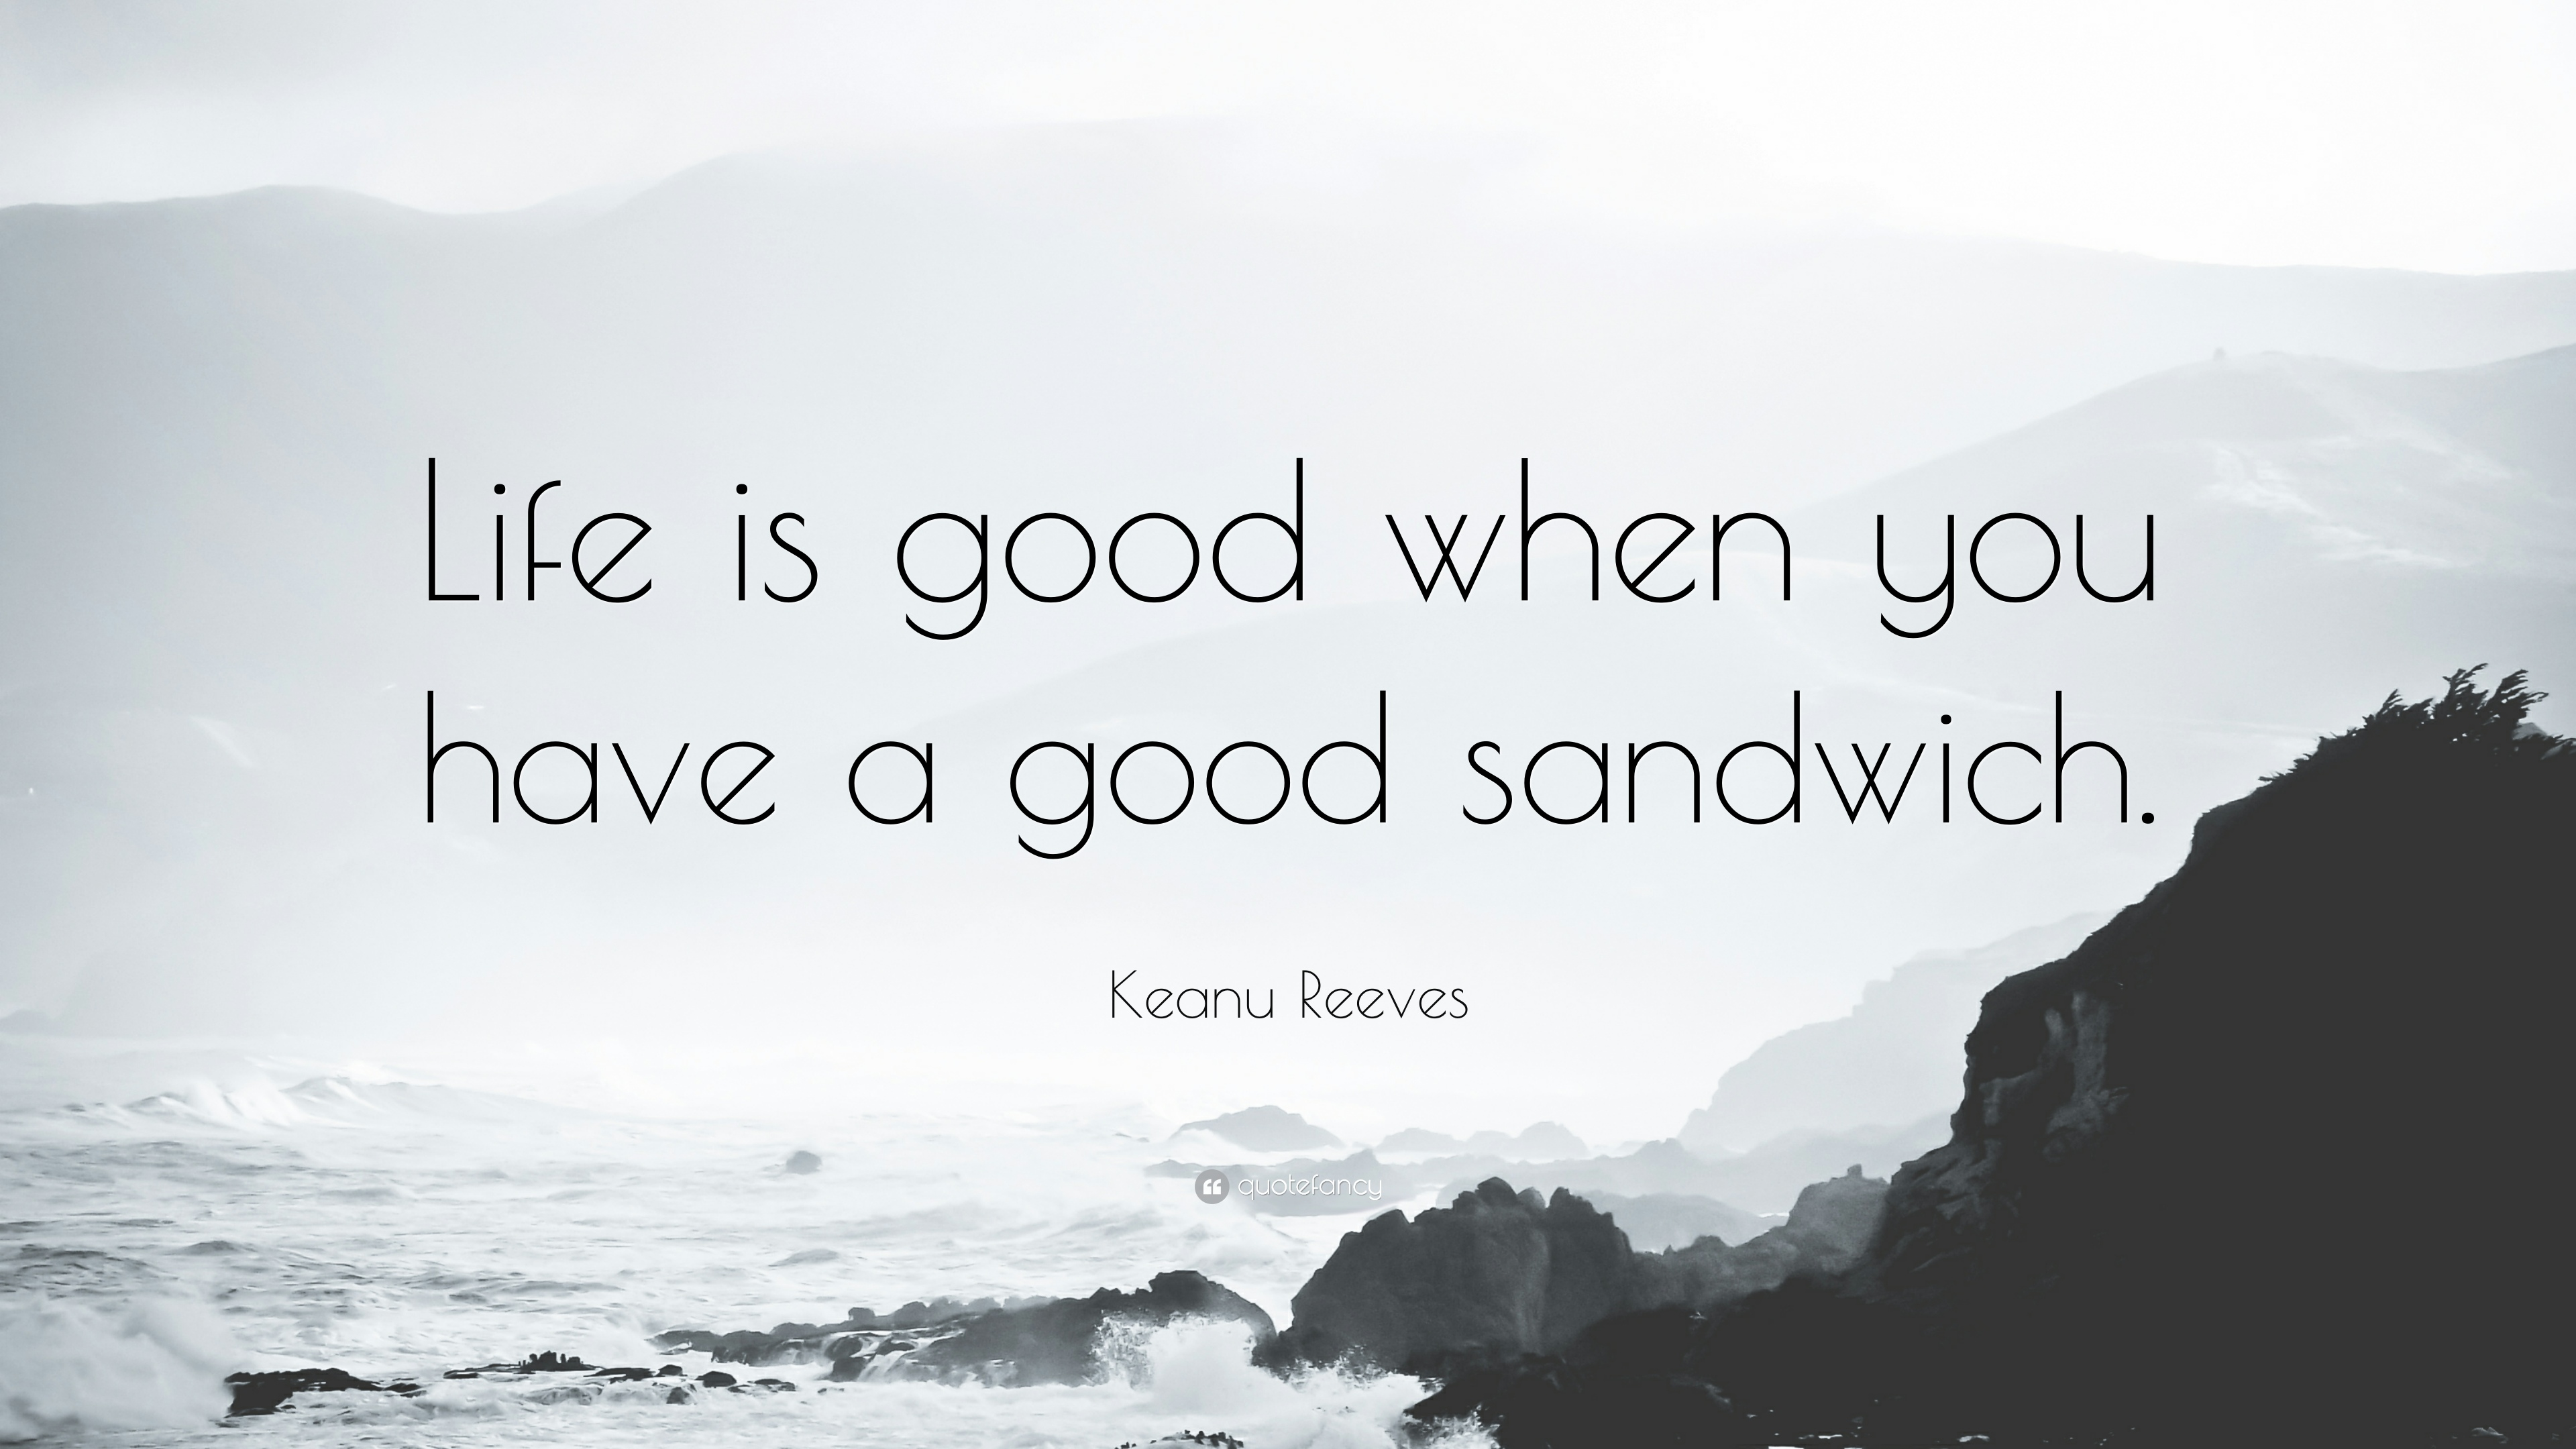 Keanu Reeves Quote Life Is Good When You Have A Good